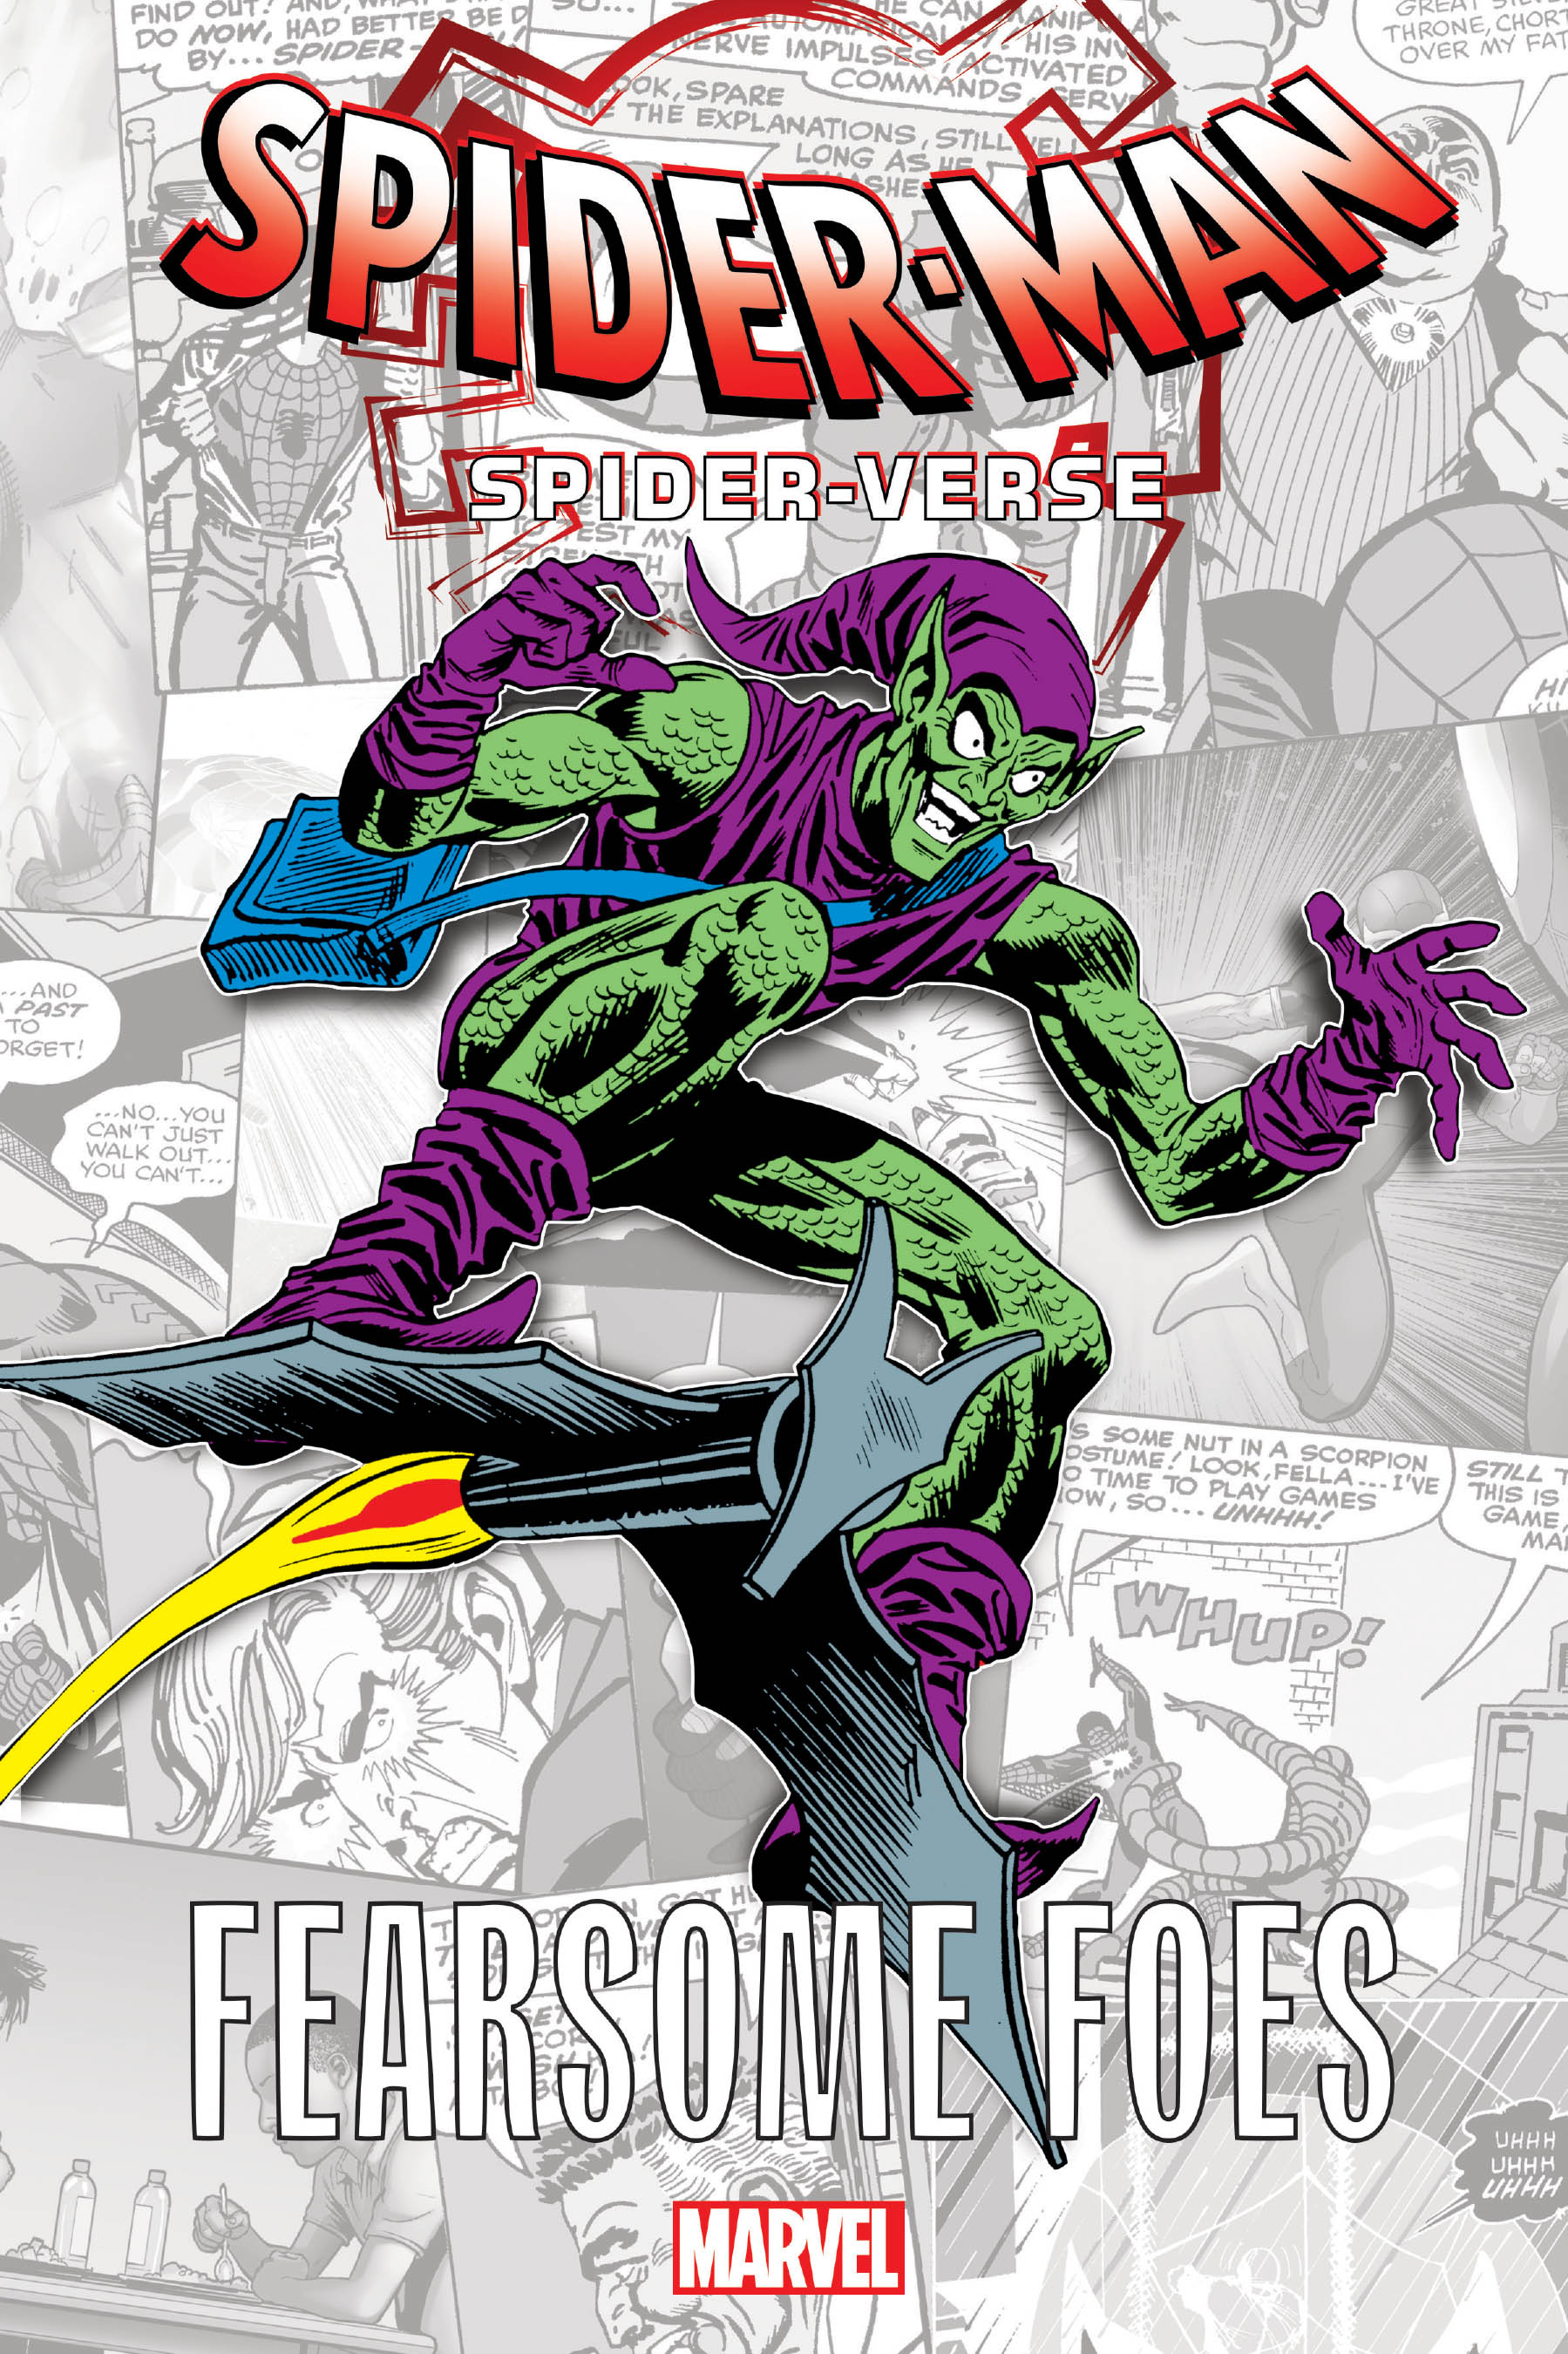 Spider-Man: Spider-Verse - Fearsome Foes (Trade Paperback)